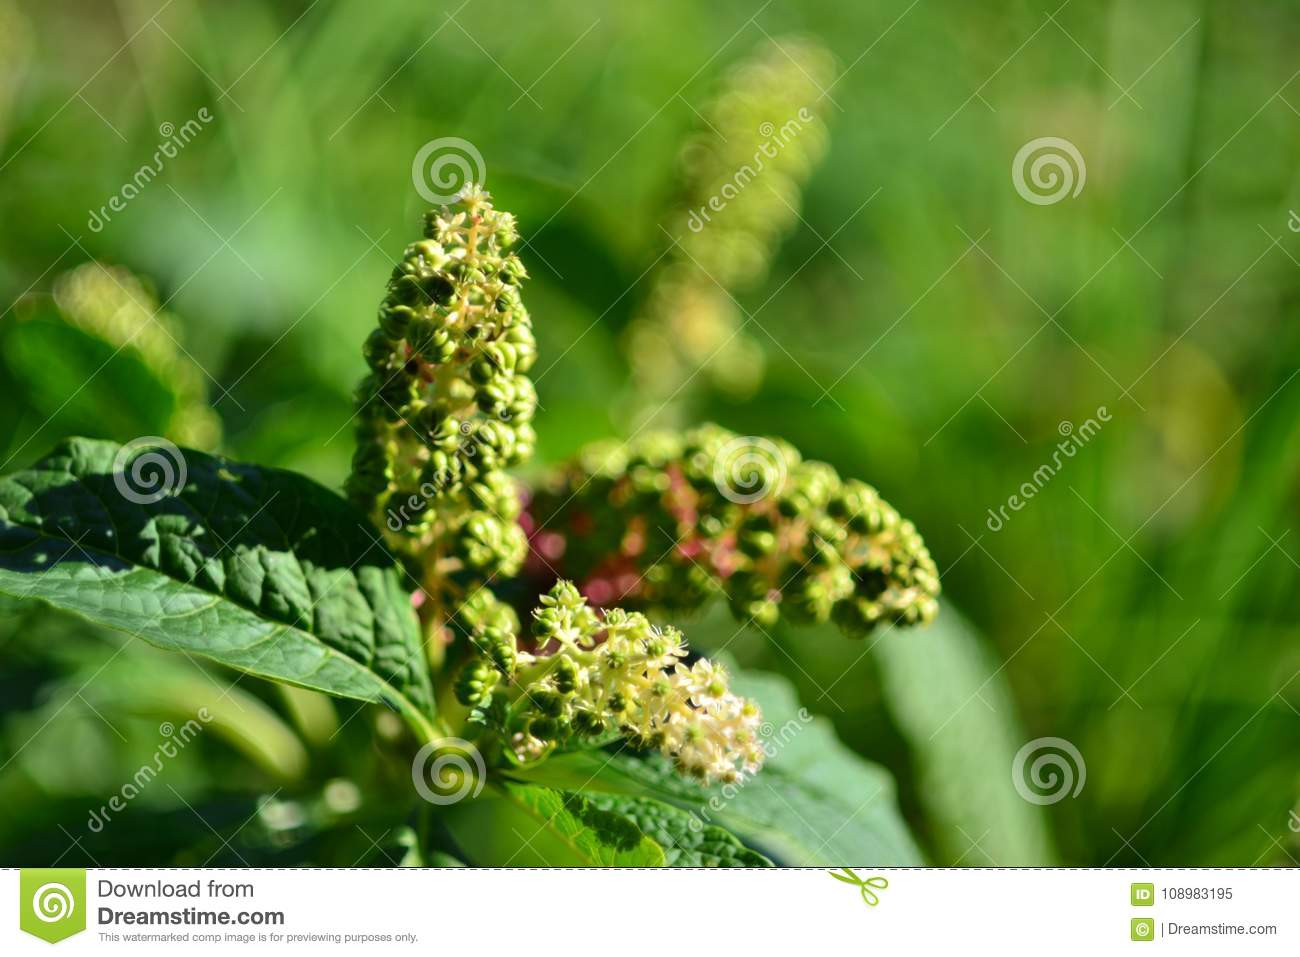 Unusual Plant With White Flowers And Green Background Stock Image